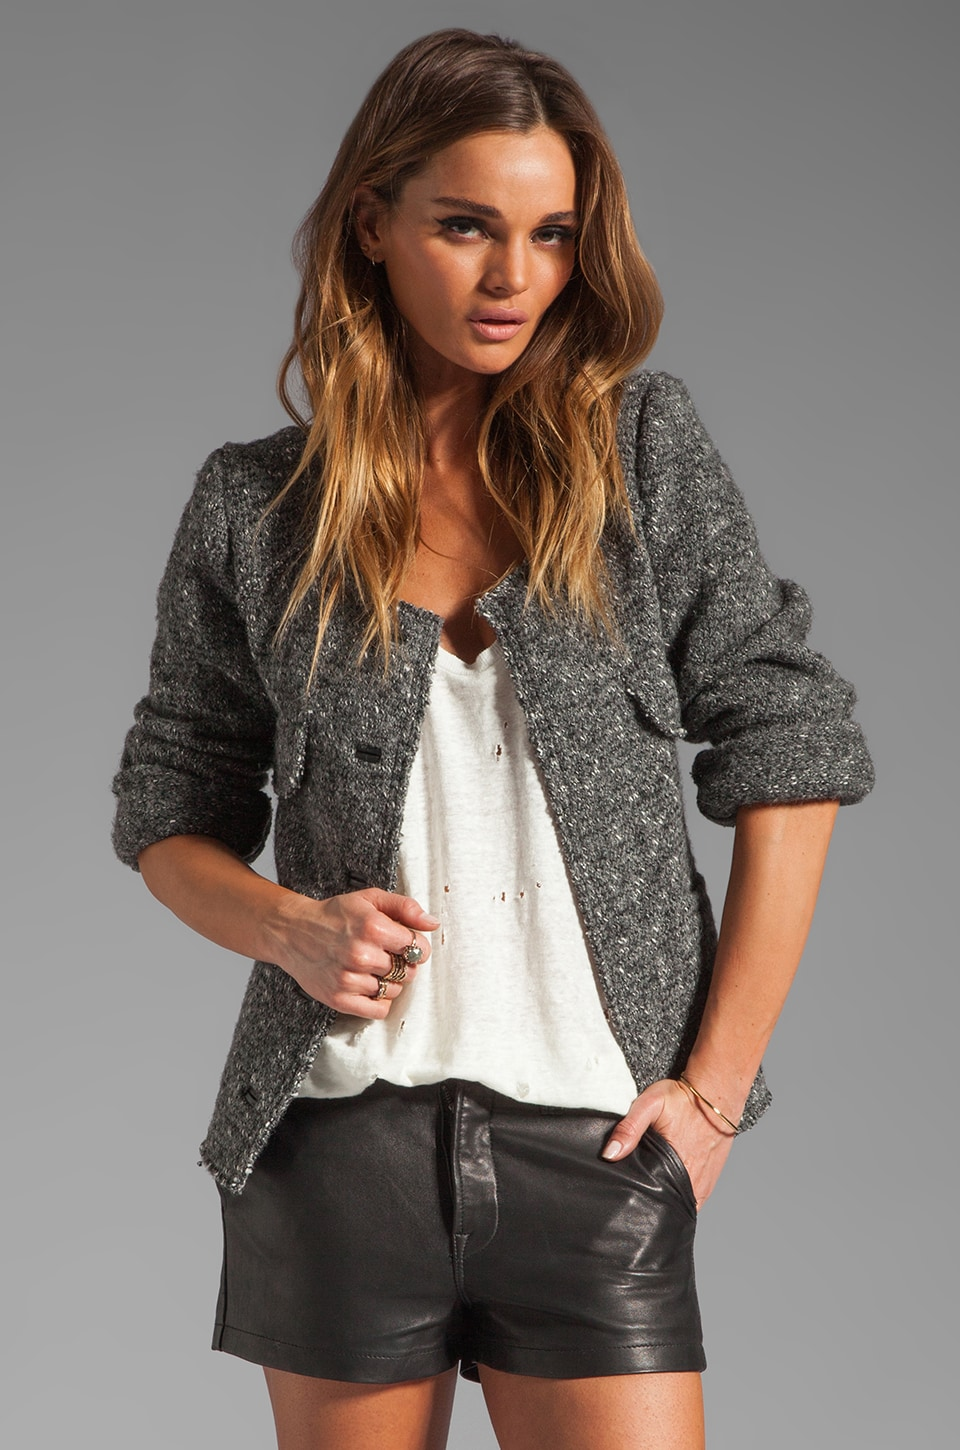 BY ZOE Griffin Boucle Jacket in Grey